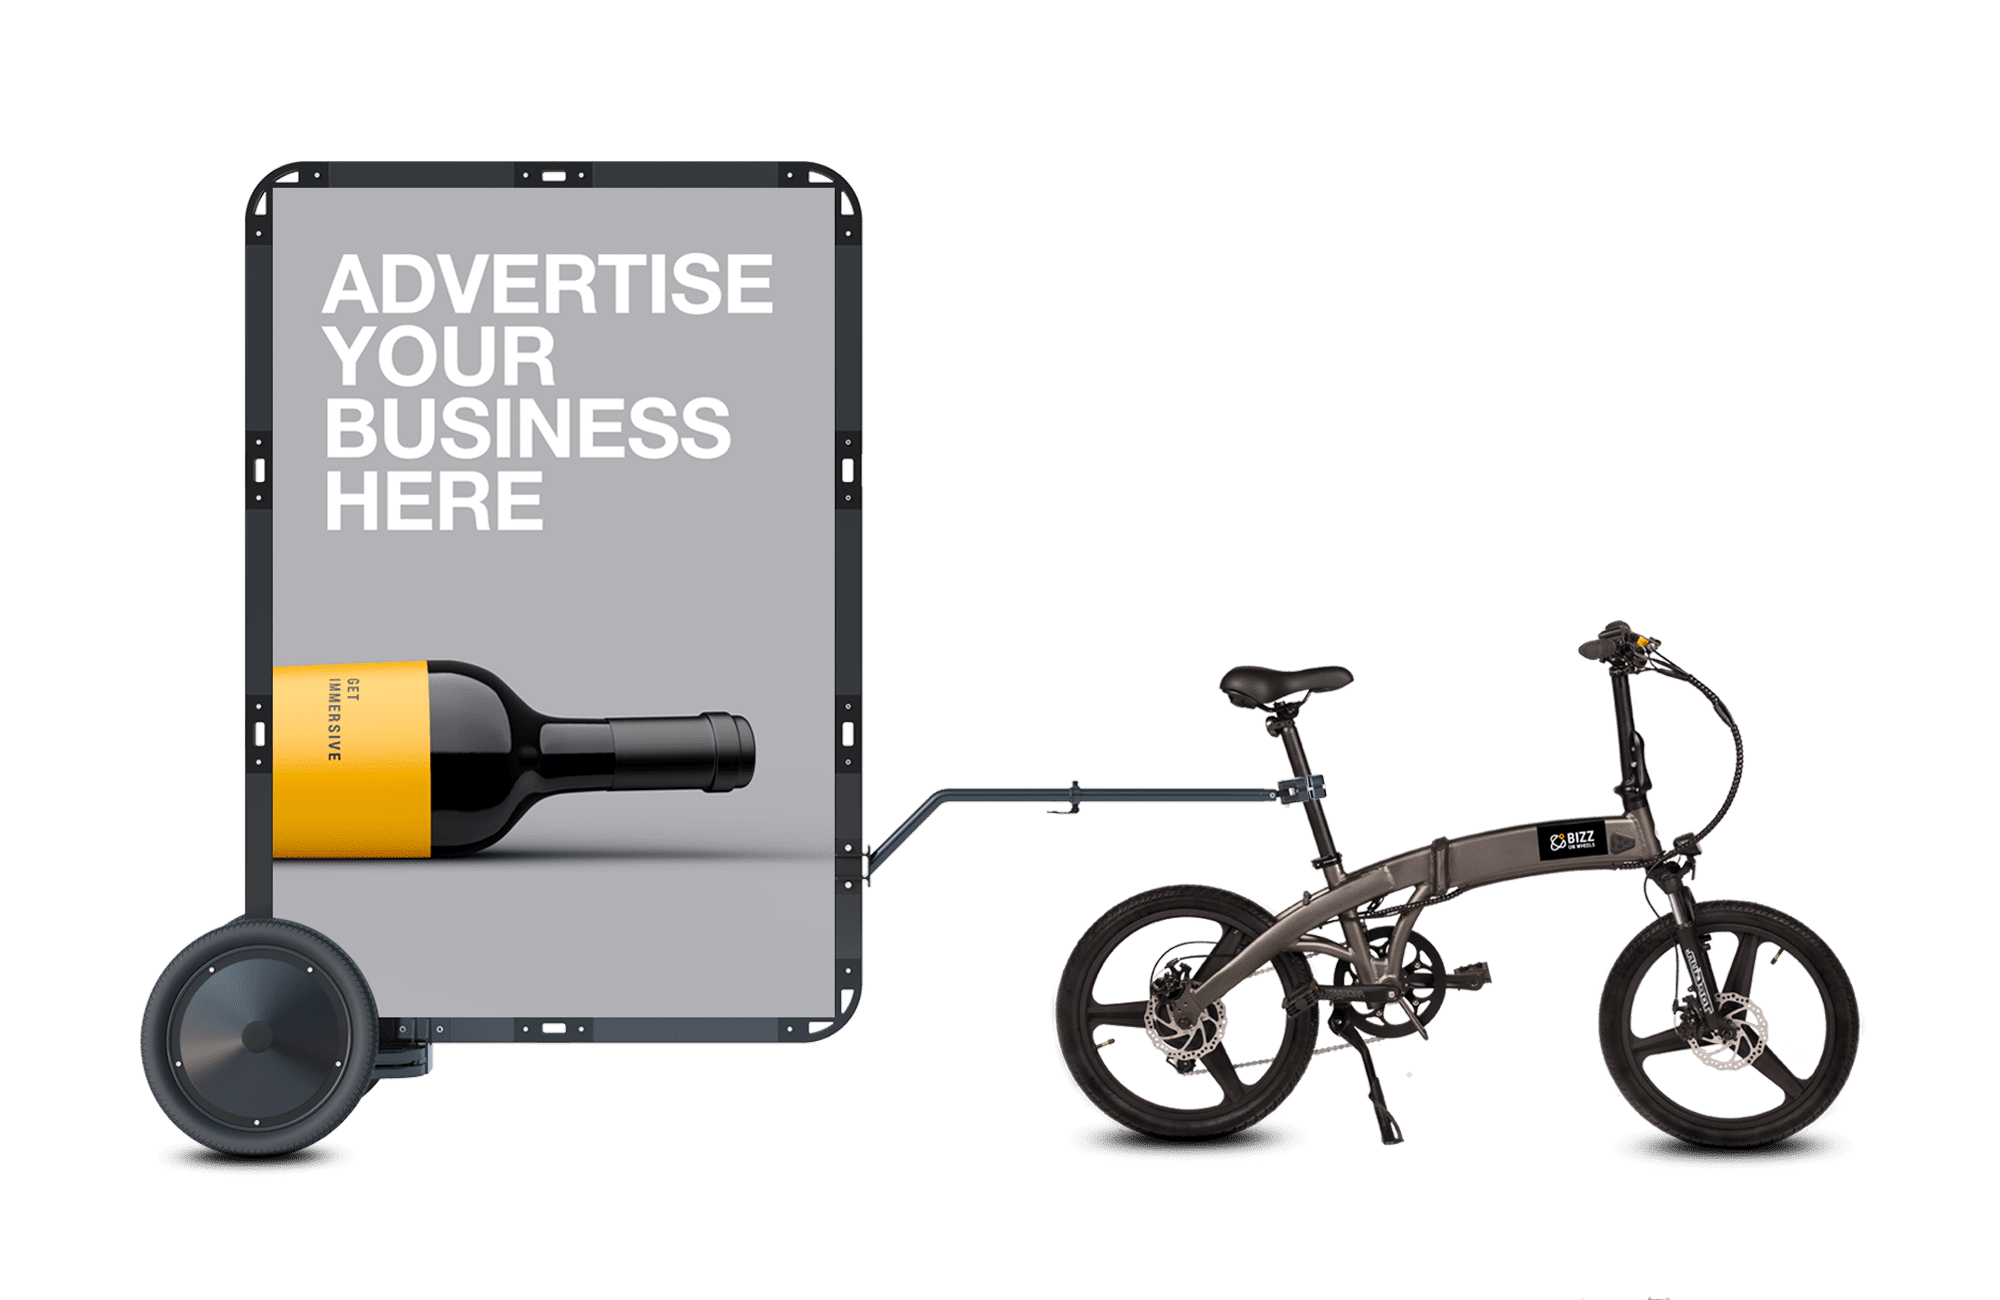 AdBicy mobile billboard by BizzOnWheels